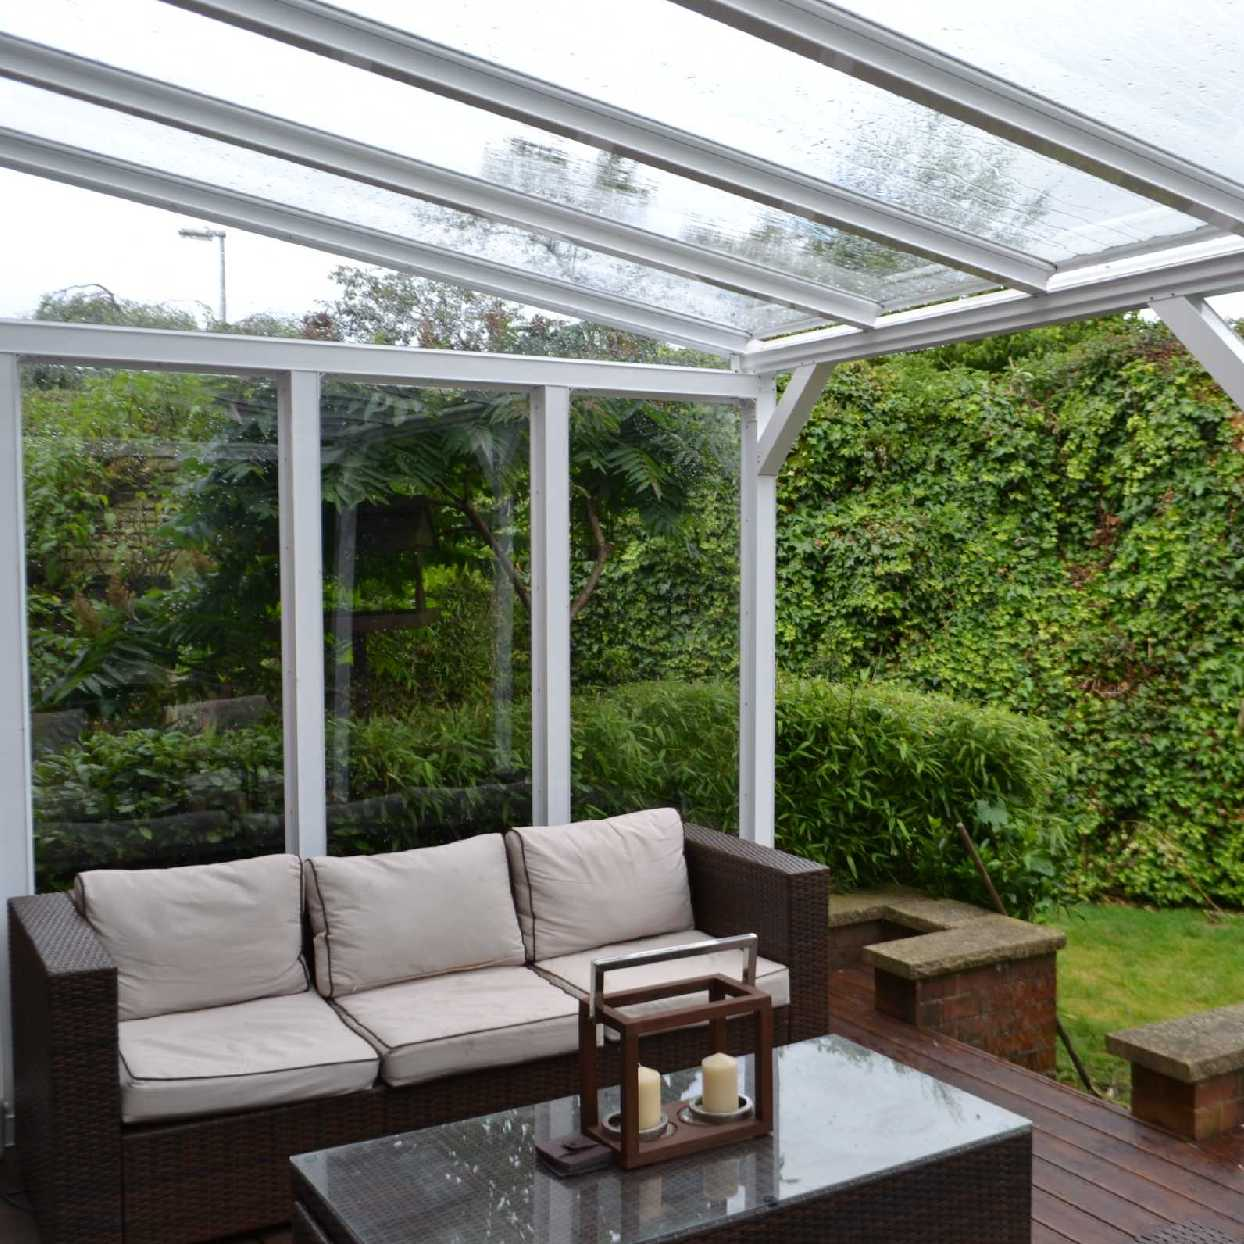 Omega Smart White Lean-To Canopy UNGLAZED for 6mm Glazing - 7.0m (W) x 2.0m (P), (4) Supporting Posts